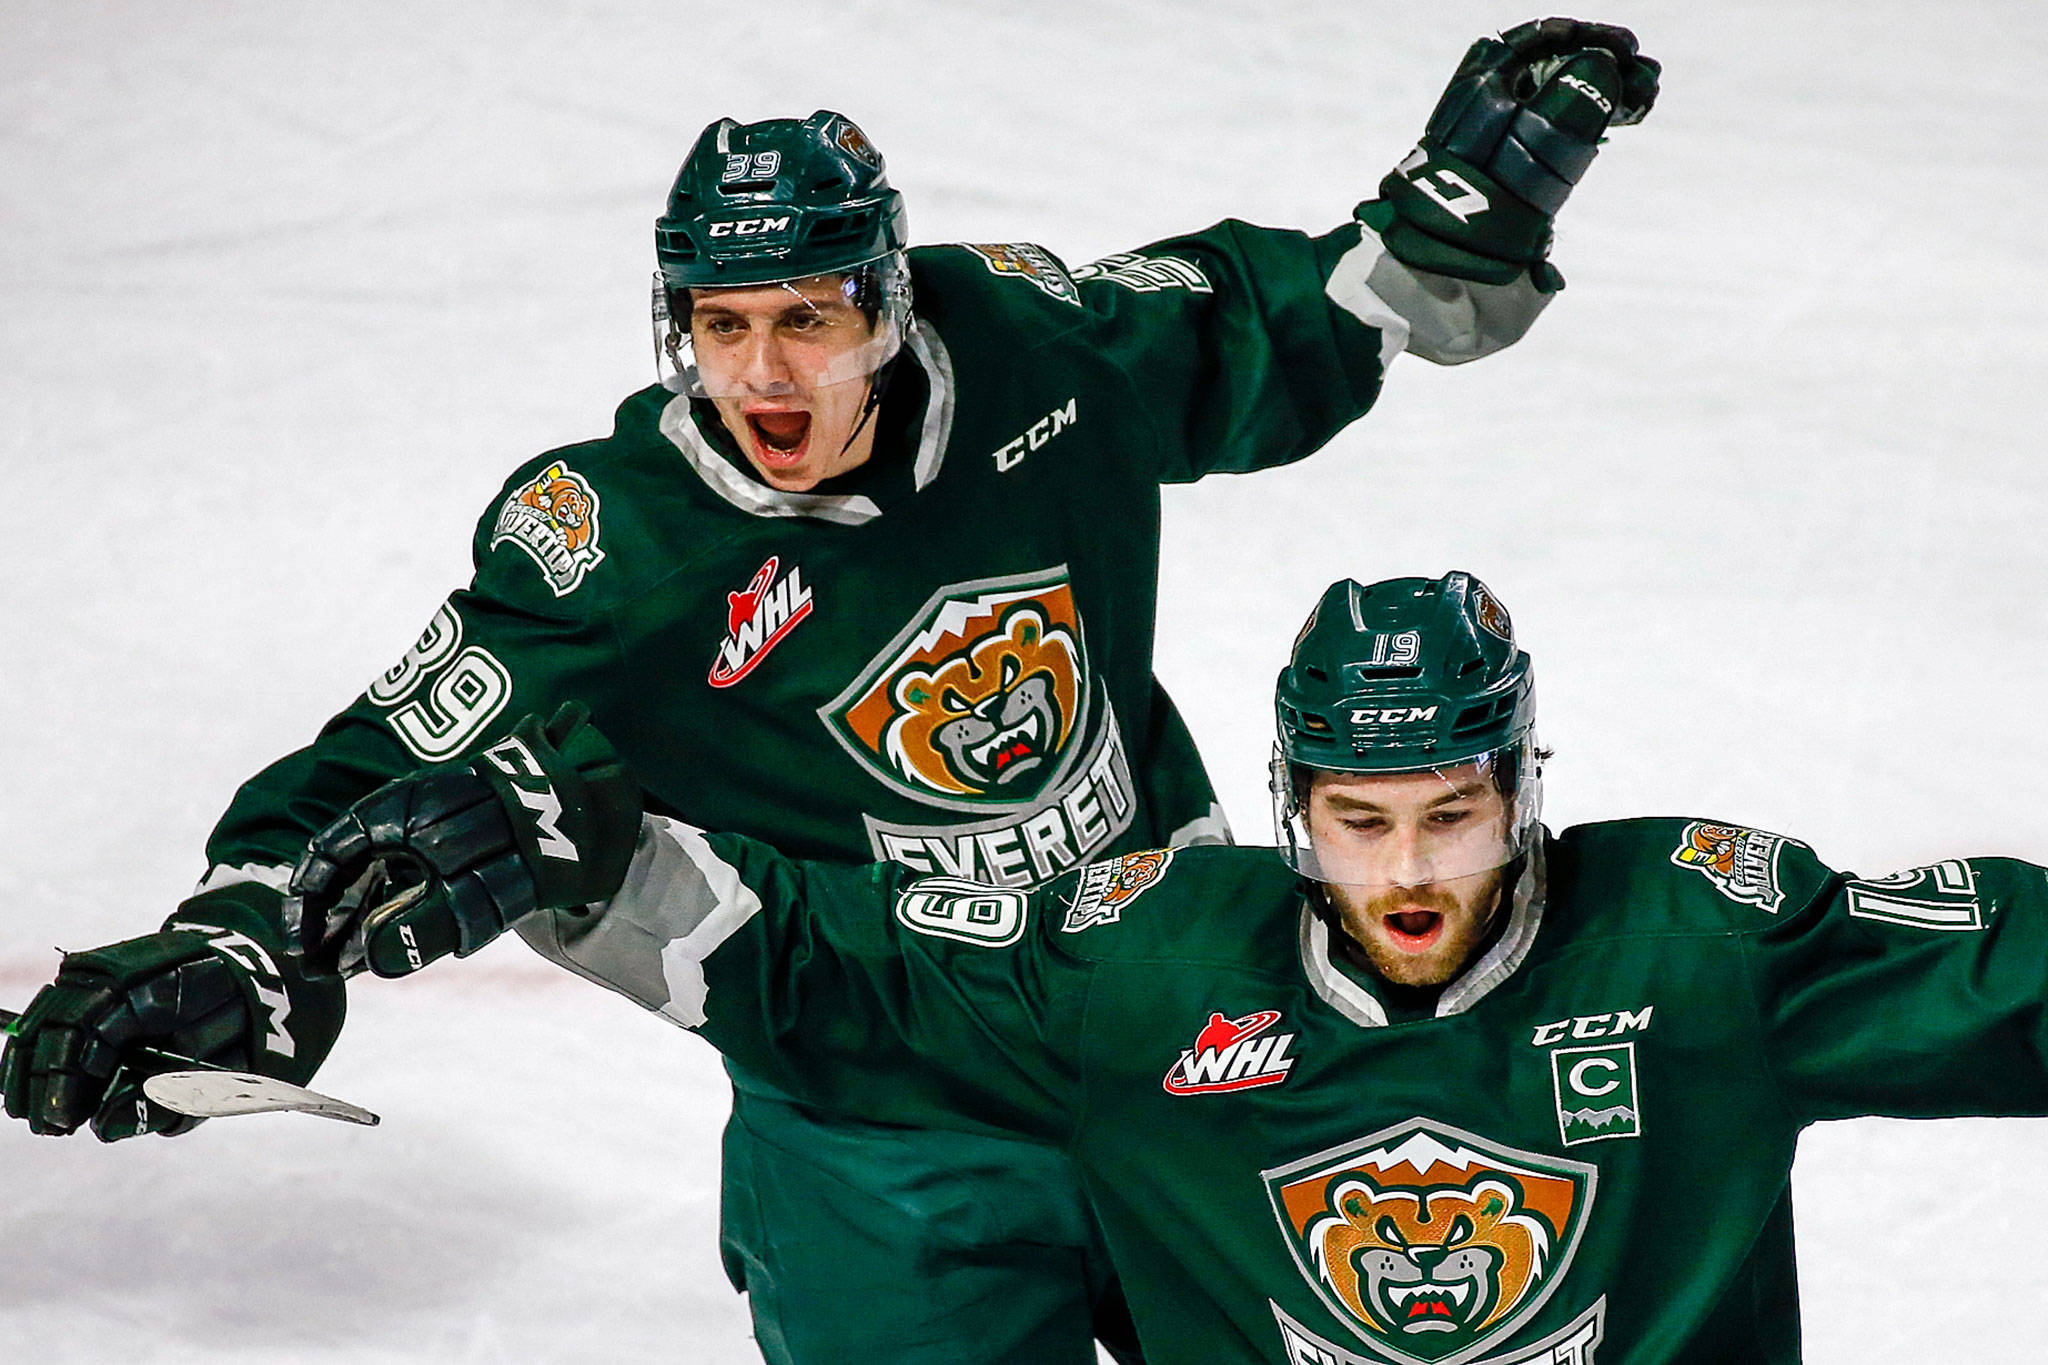 The Silvertips' Gage Goncalves (left) and Bryce Kindopp celebrate a goal against Seattle during a game on March 8, 2020, in Kent. (Kevin Clark / The Herald)